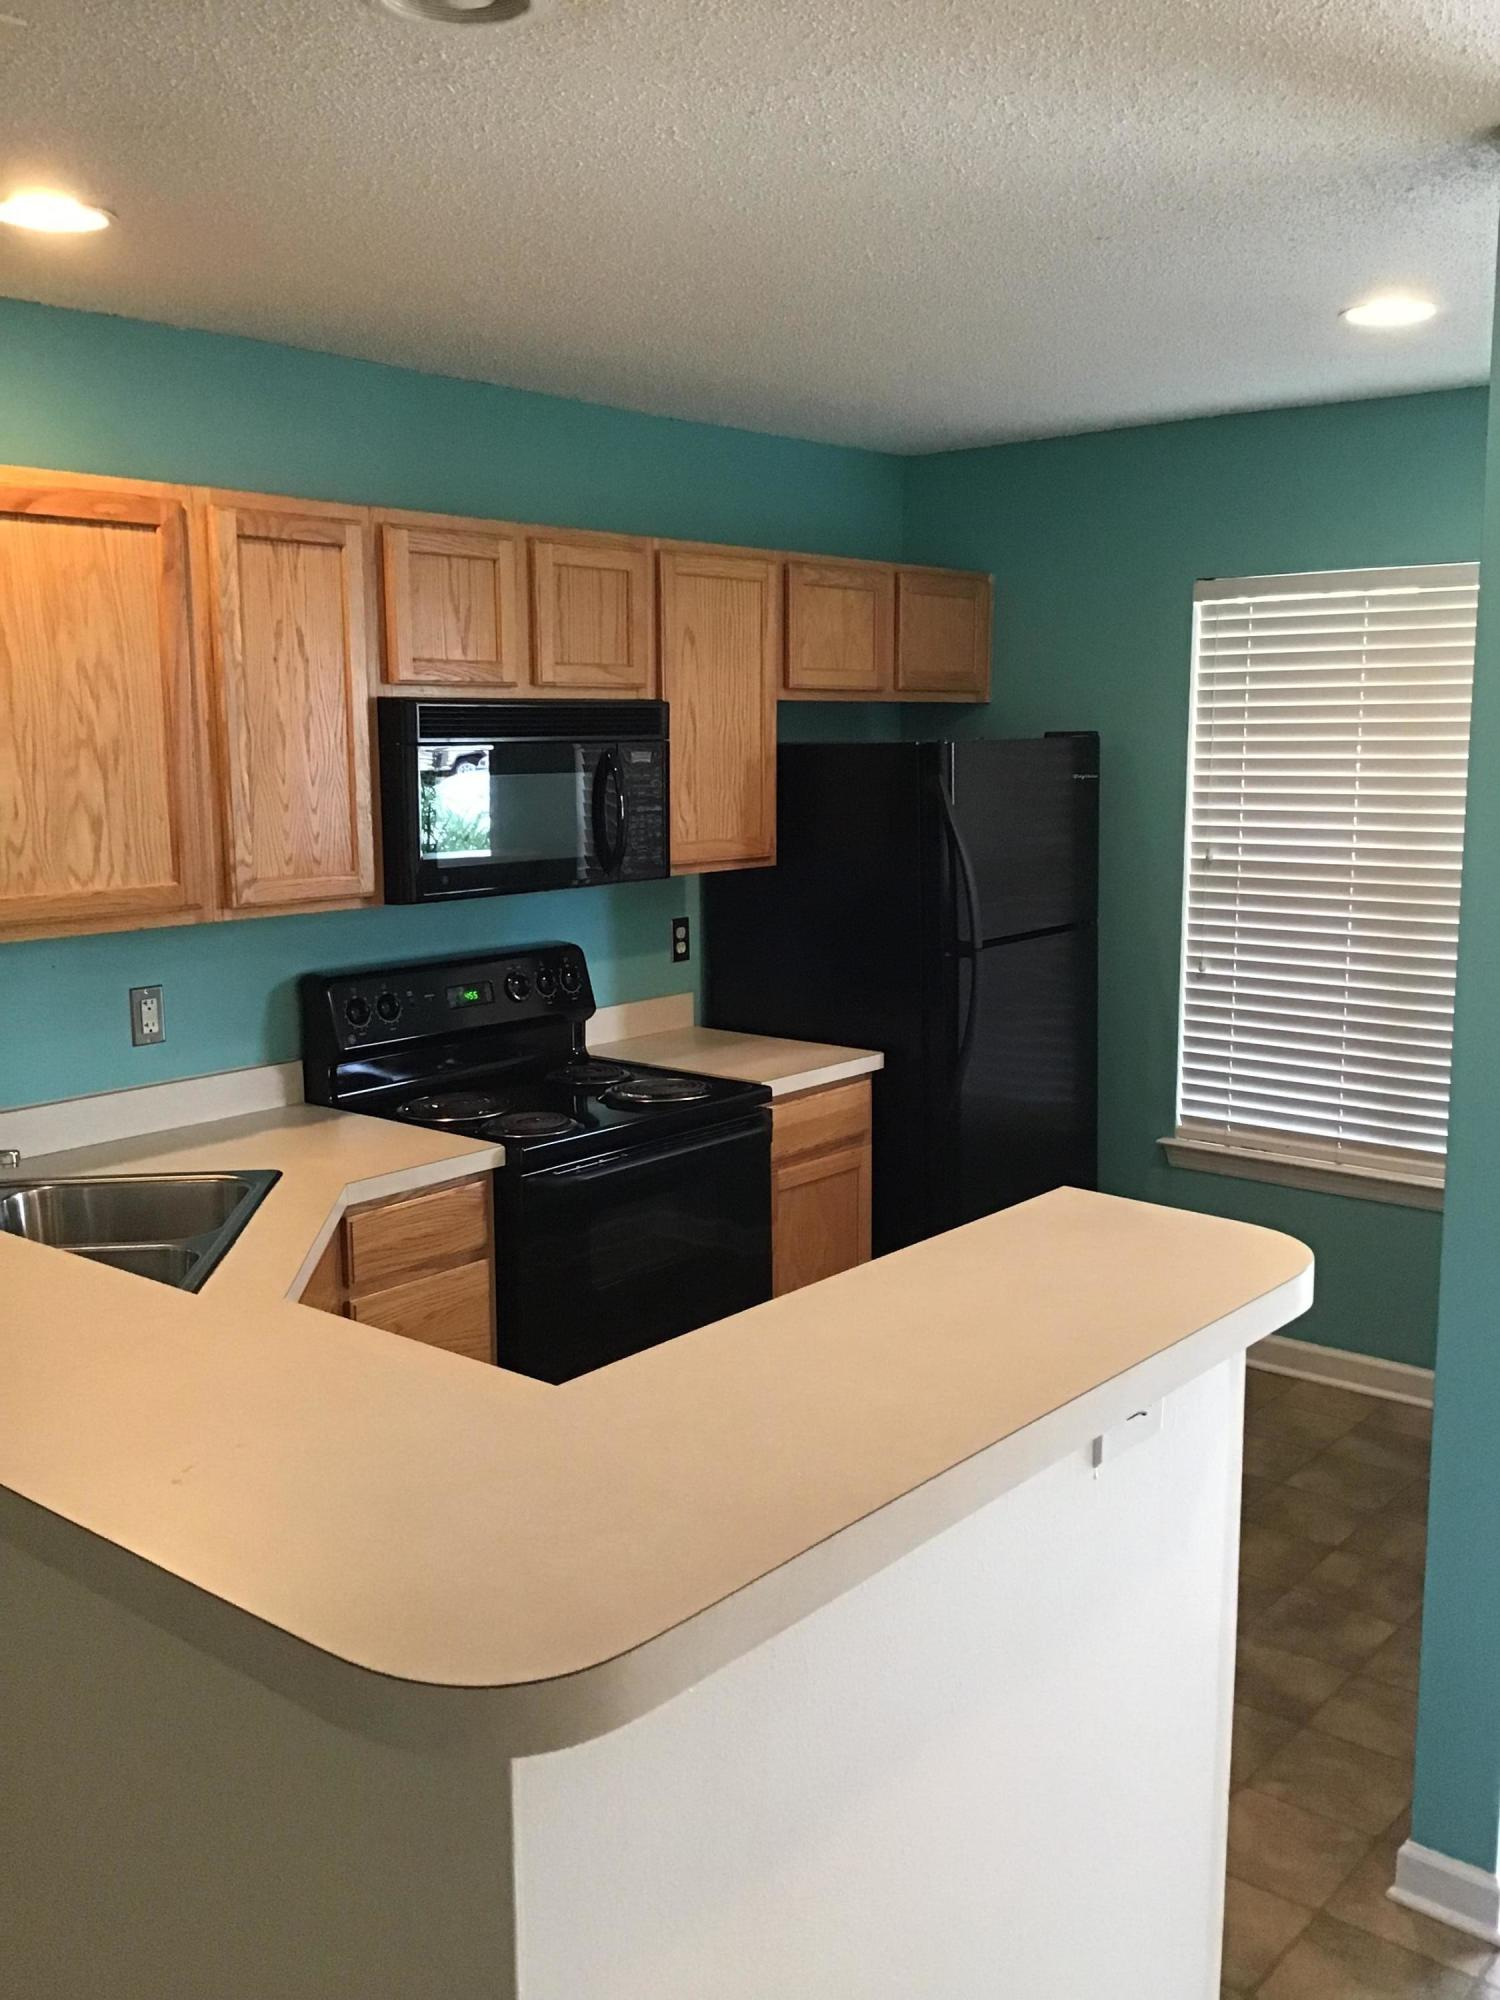 Persimmon Hill Townhouses Homes For Sale - 102 Darcy, Goose Creek, SC - 3